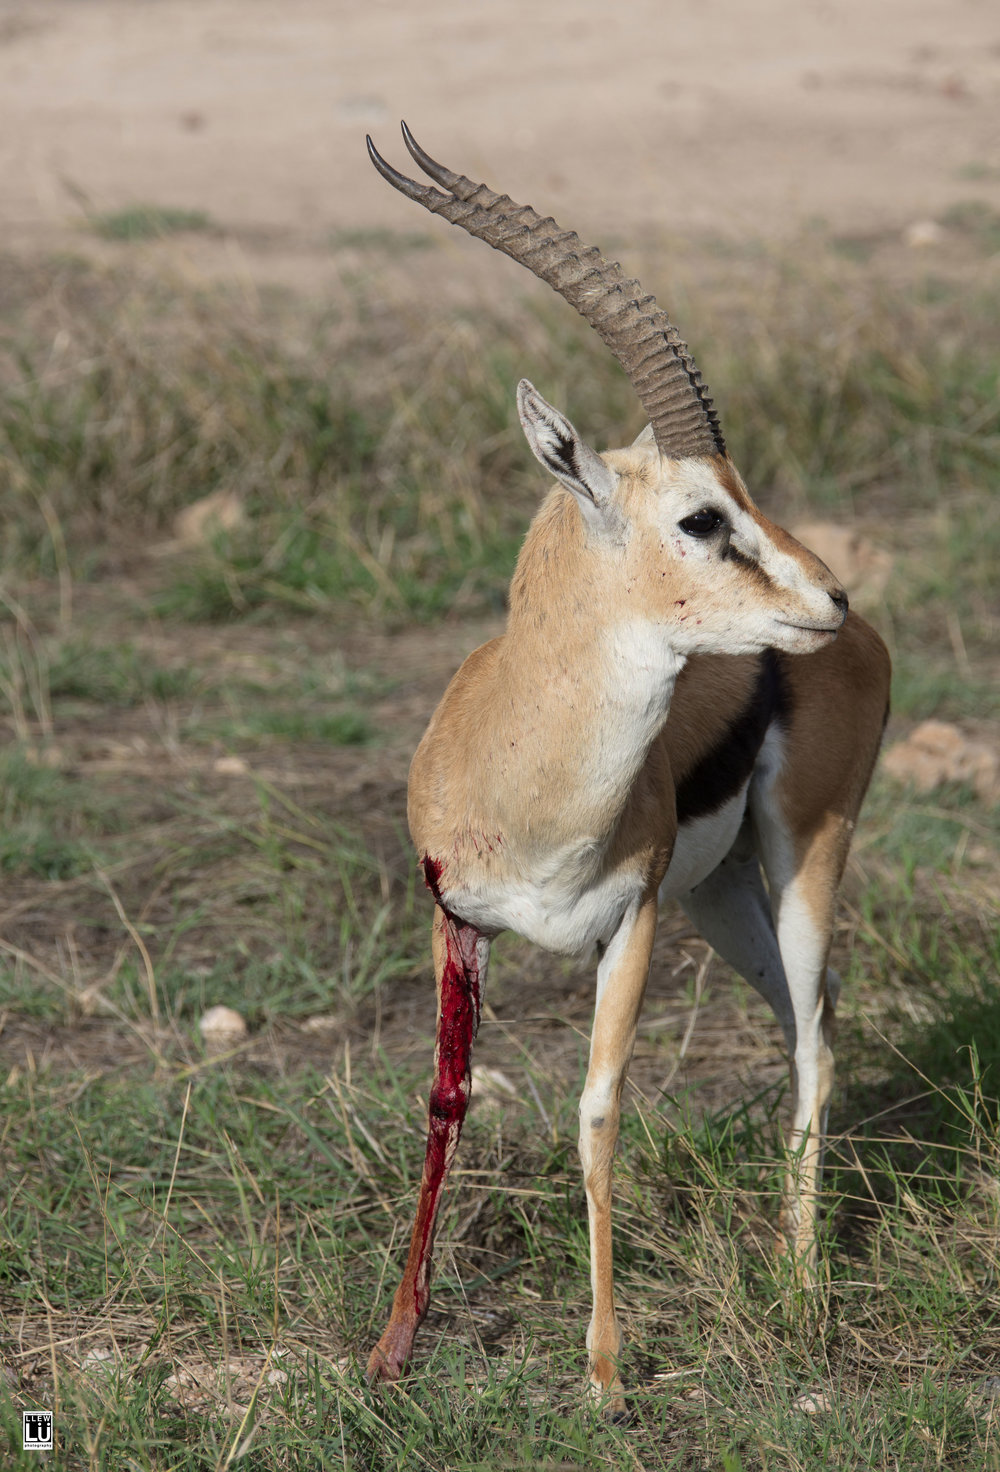 This male gazelle, at the Amboseli was punctured, most likely by another gazelle.